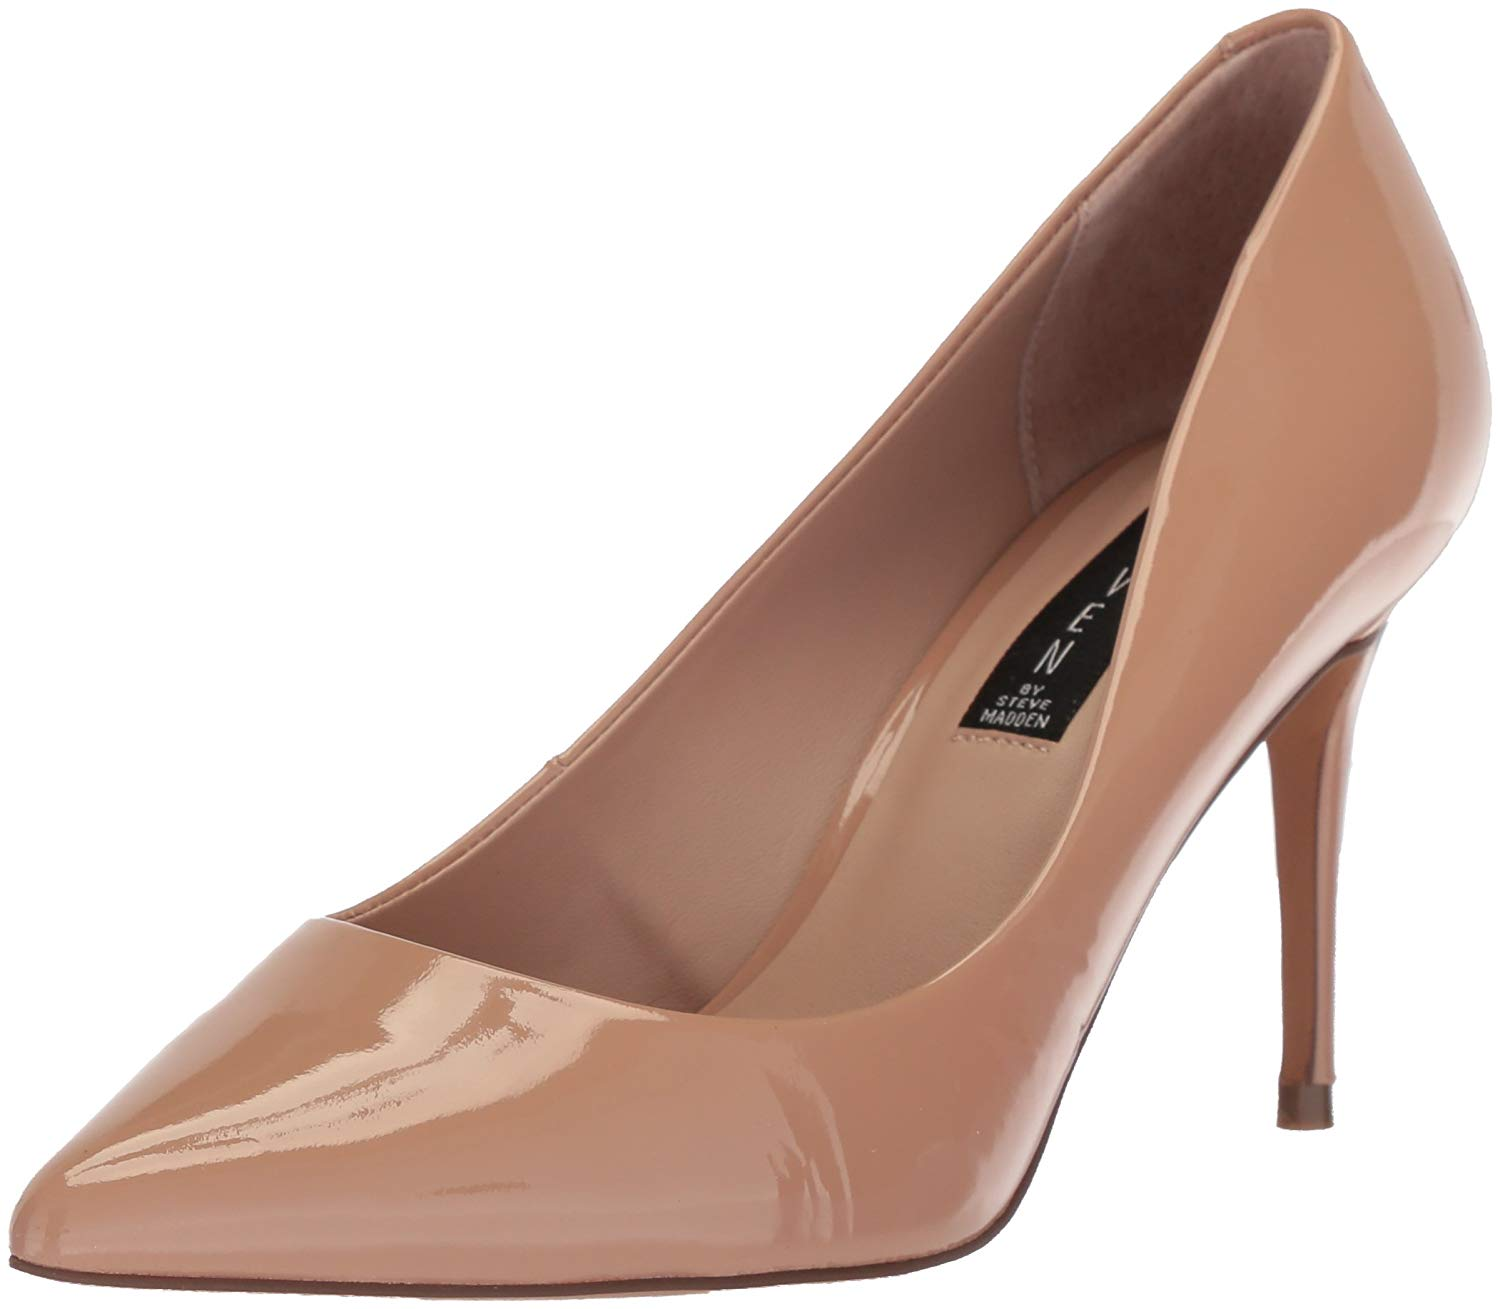 4130af027ae Steven by Steve Madden local Womens Heels   Pumps Dark Blush Patent 9 US    7 UK